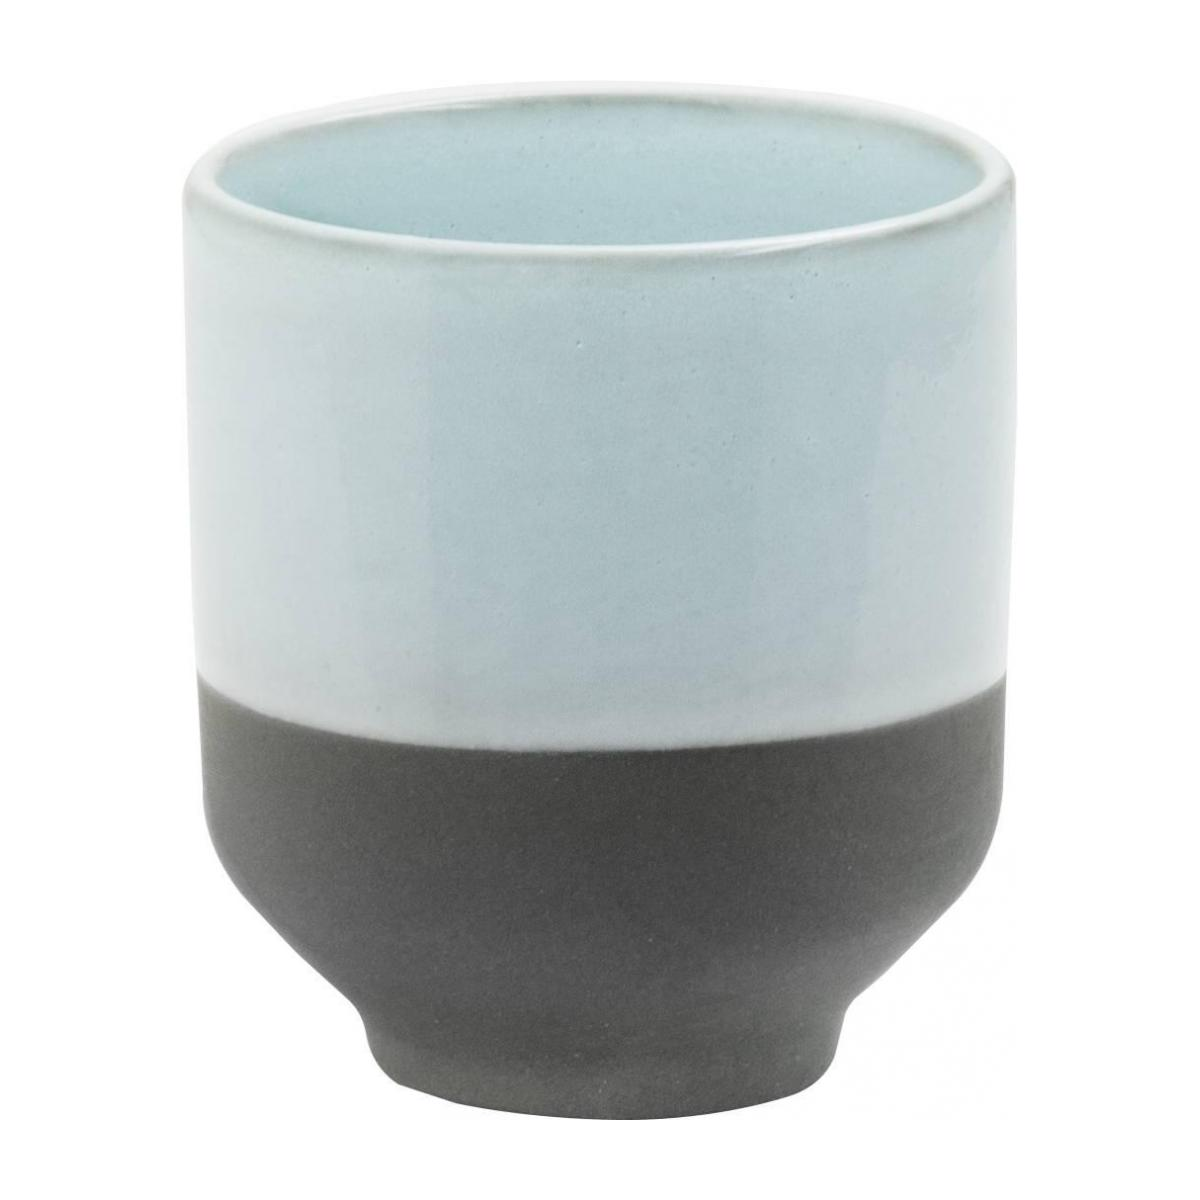 Expresso cup made of porcelain, brown and green - Design by Perla Valtierra n°1